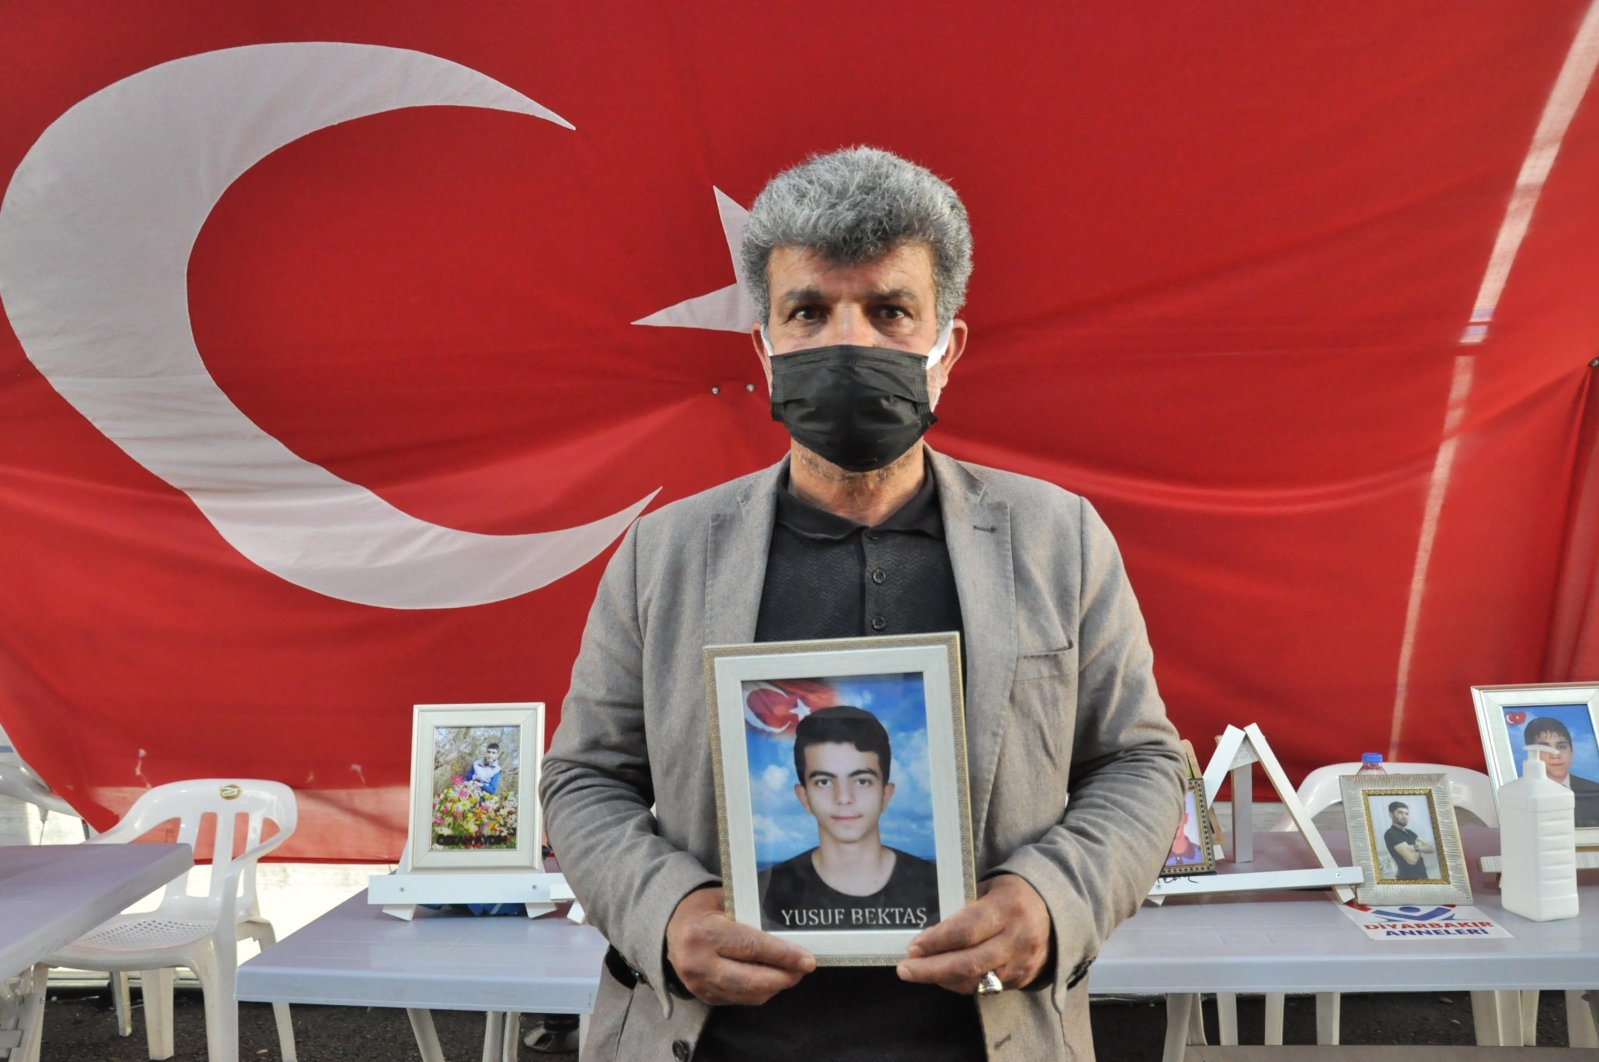 Celil Bekdaş stages a protest against the PKK terrorist group in the southeastern province of Diyarbakır, Turkey, March 29, 2021. (DHA Photo)